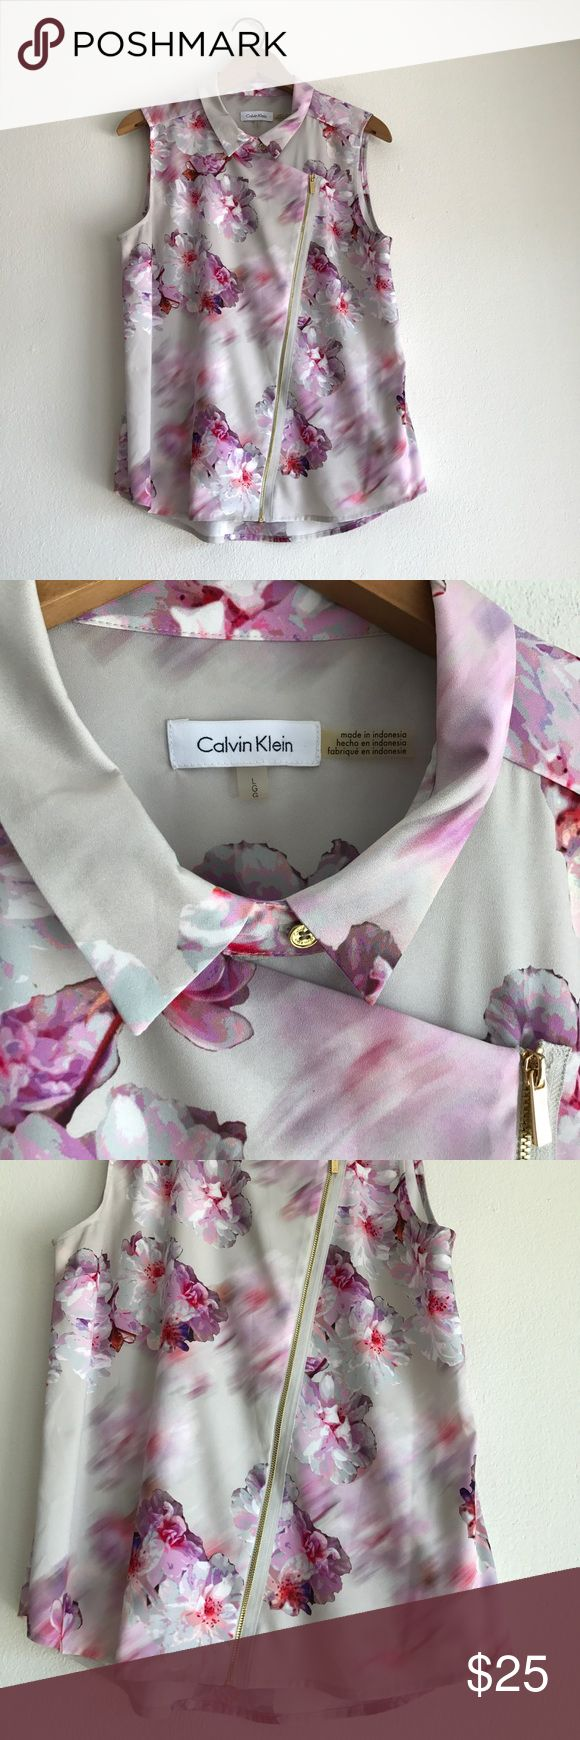 Calvin Klein Sheer Floral Zip-Up Blouse Size Large Gently used.  Beautiful Floral sheer material.  Asymmetrical zipper up the front with 2 gold colored buttons at the neck.  Can be worn as a vest or tank top.  100% Polyester Calvin Klein Tops Blouses